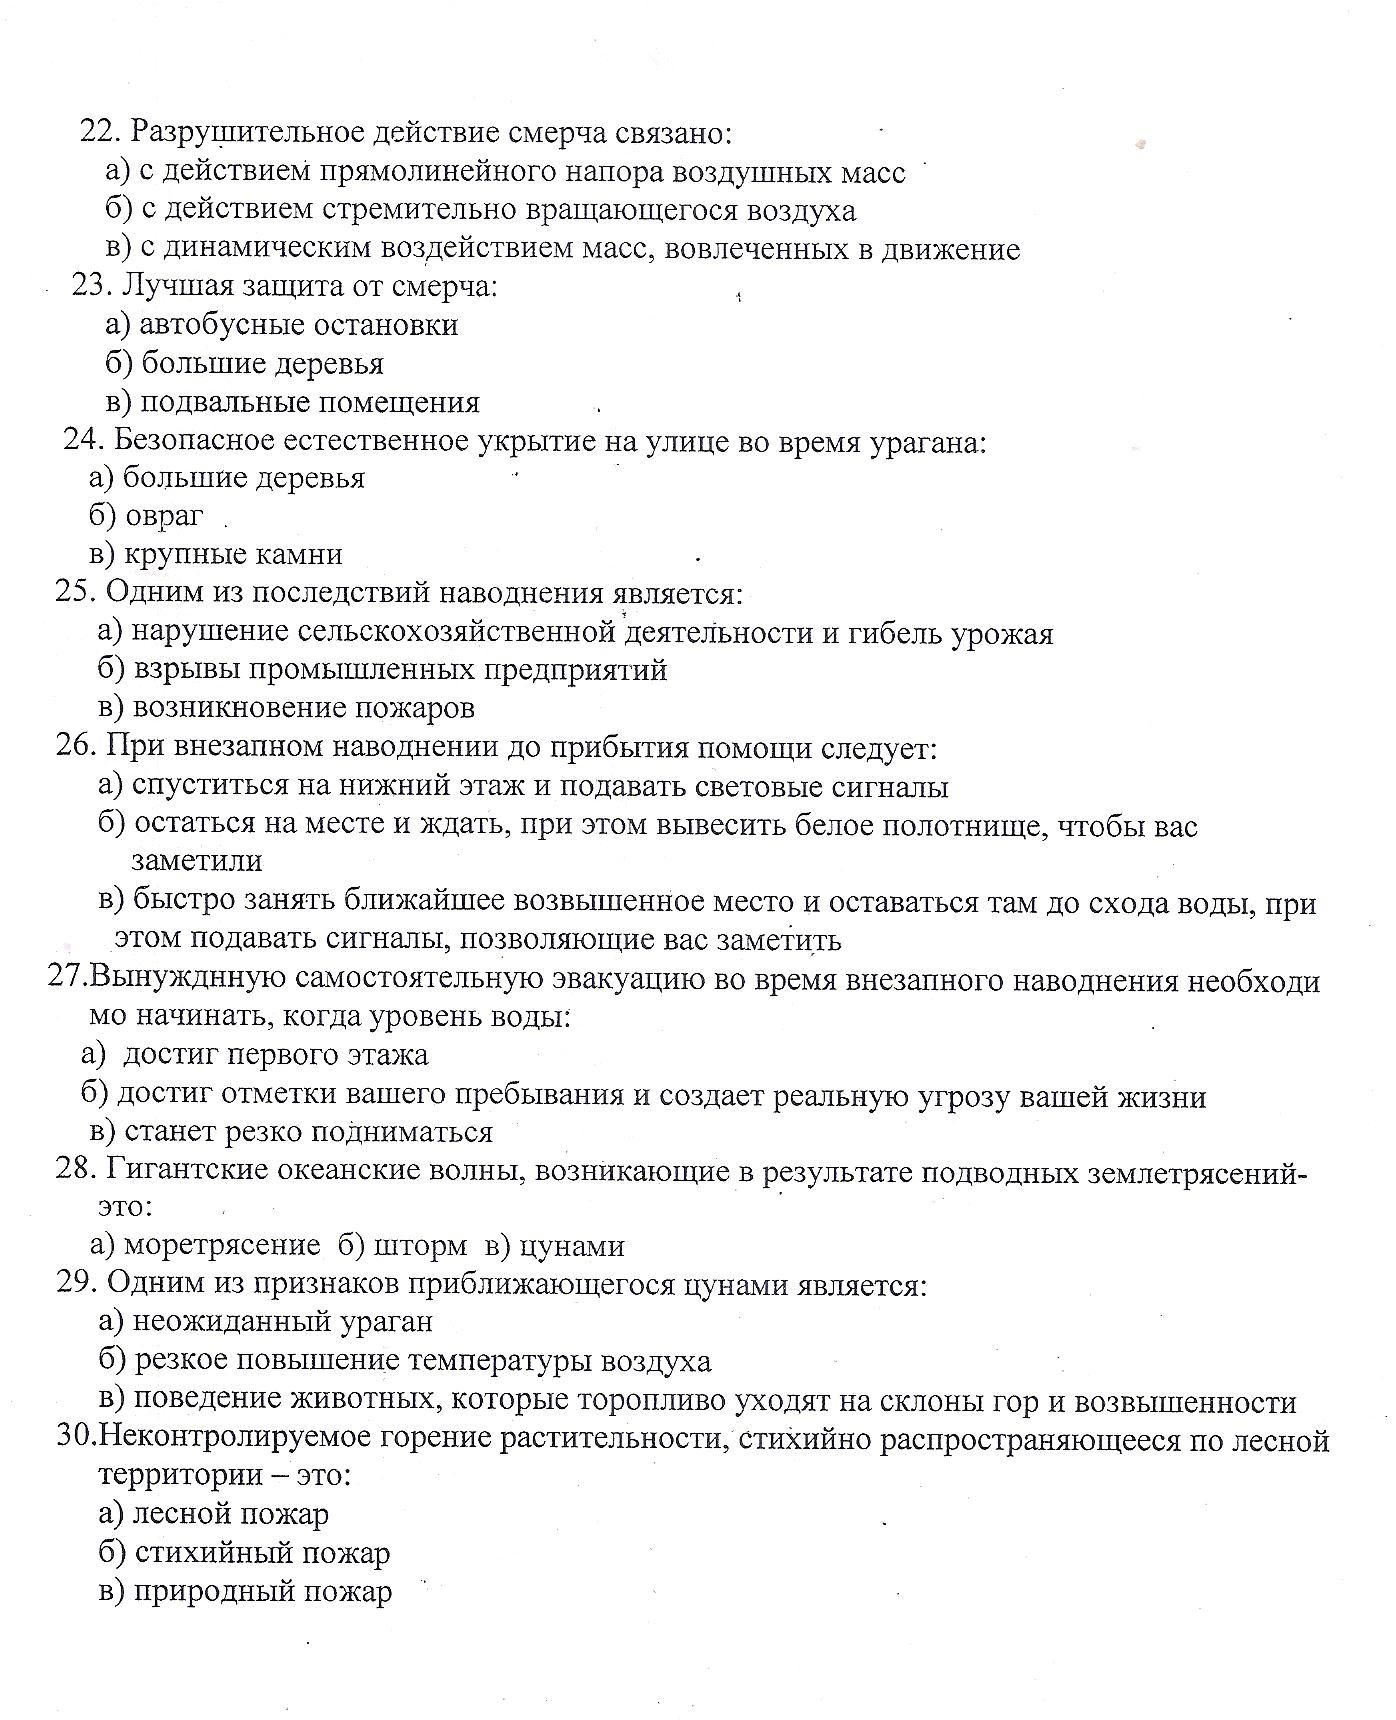 C:\Users\Наталья\Pictures\2015-05-12\005.jpg